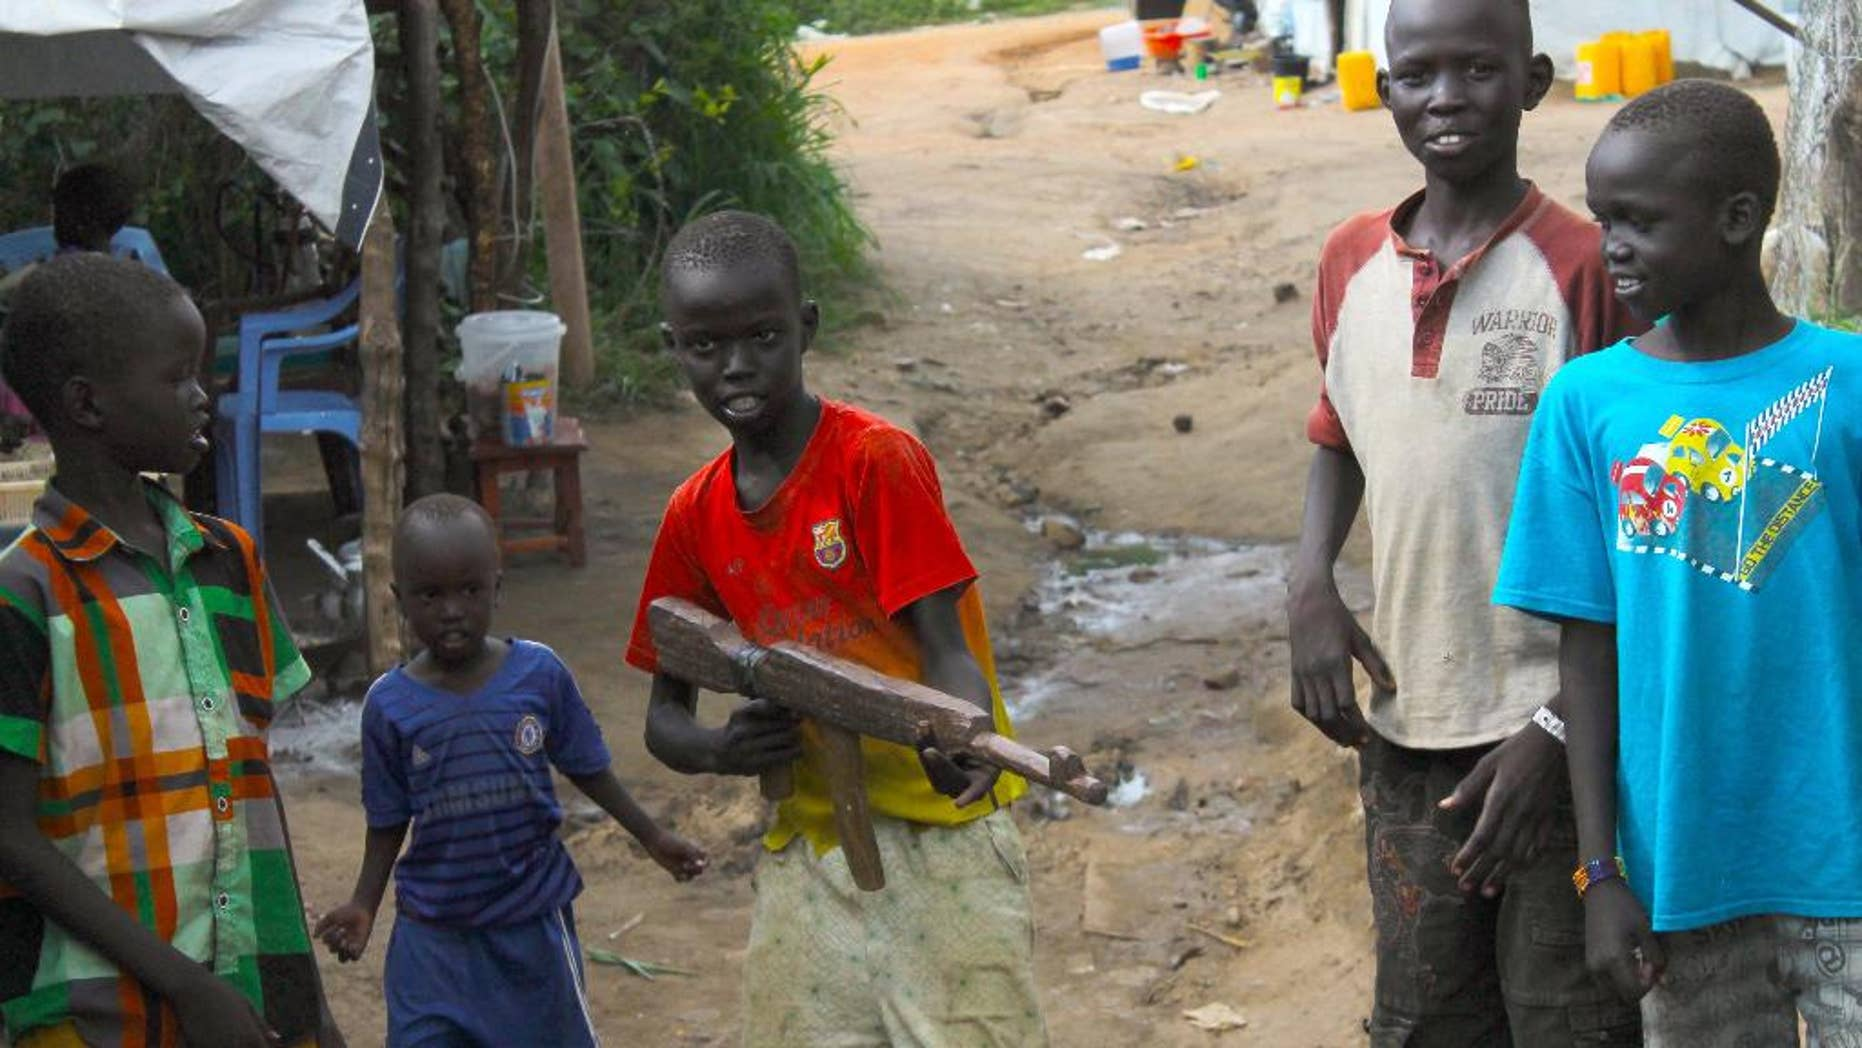 In this Monday, July 25, 2016 photo, a group of children at the U.N. protection of Civilians site in Juba, South Sudan, play with a makeshift gun. South Sudan's government has recruited child soldiers in the past week to prepare for a renewed conflict, according to an internal United Nations document obtained by The Associated Press. The document says a senior politician appointed by President Salva Kiir led the recruitment of an entire village of boys using intimidation. Some were as young as 12 years old. It was not clear how many children were involved. (AP Photo/Justin Lynch)